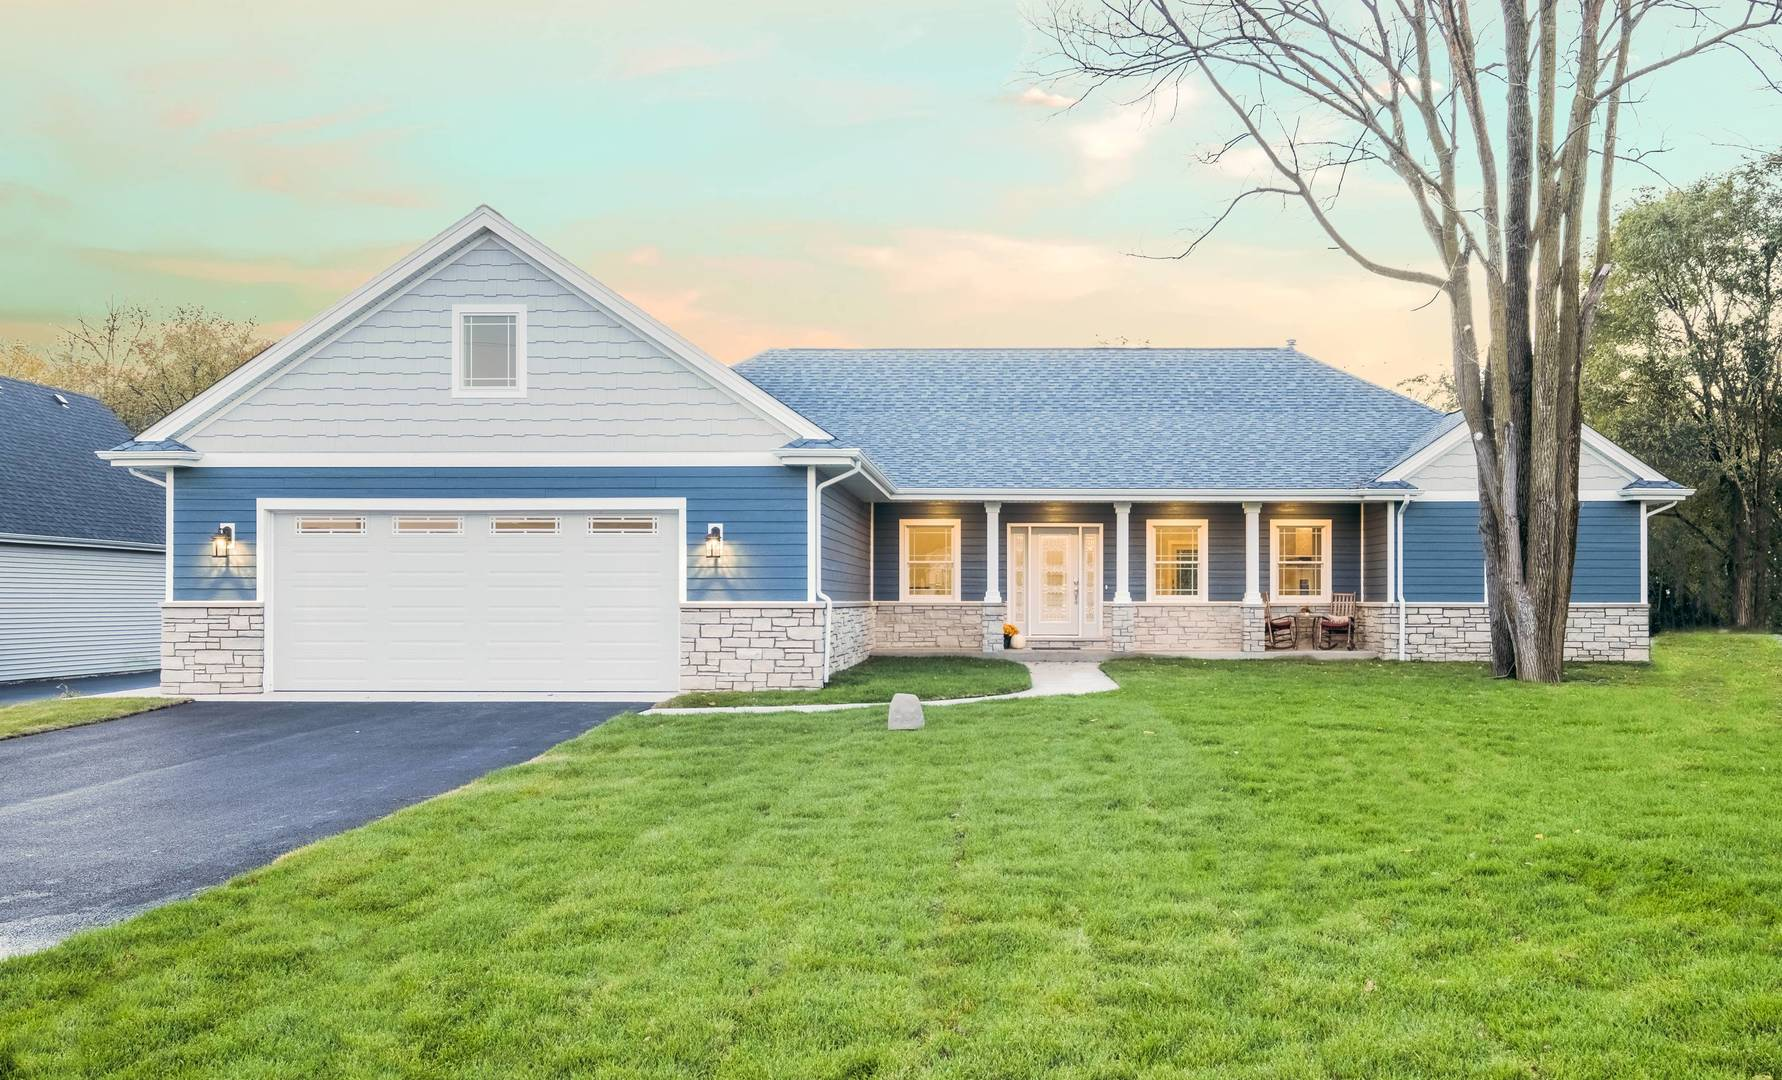 21216 South 78th Avenue 60423 - One of Frankfort Homes for Sale